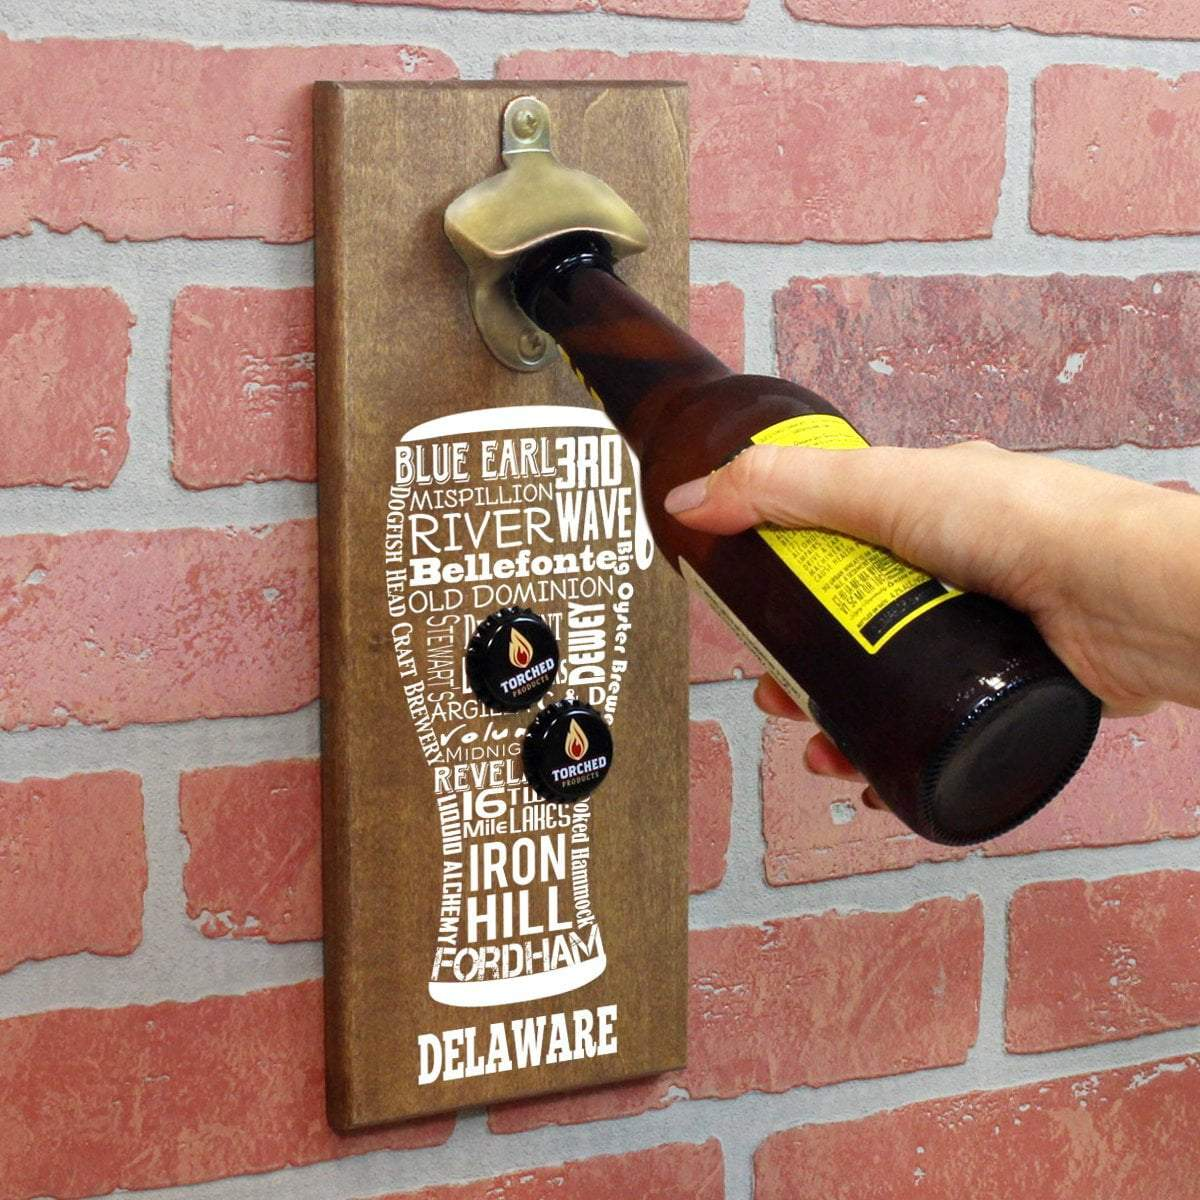 delaware craft beer typography cap catching magnetic bottle openertorched products bottle opener default title delaware craft beer typography cap catching magnetic bottle opener